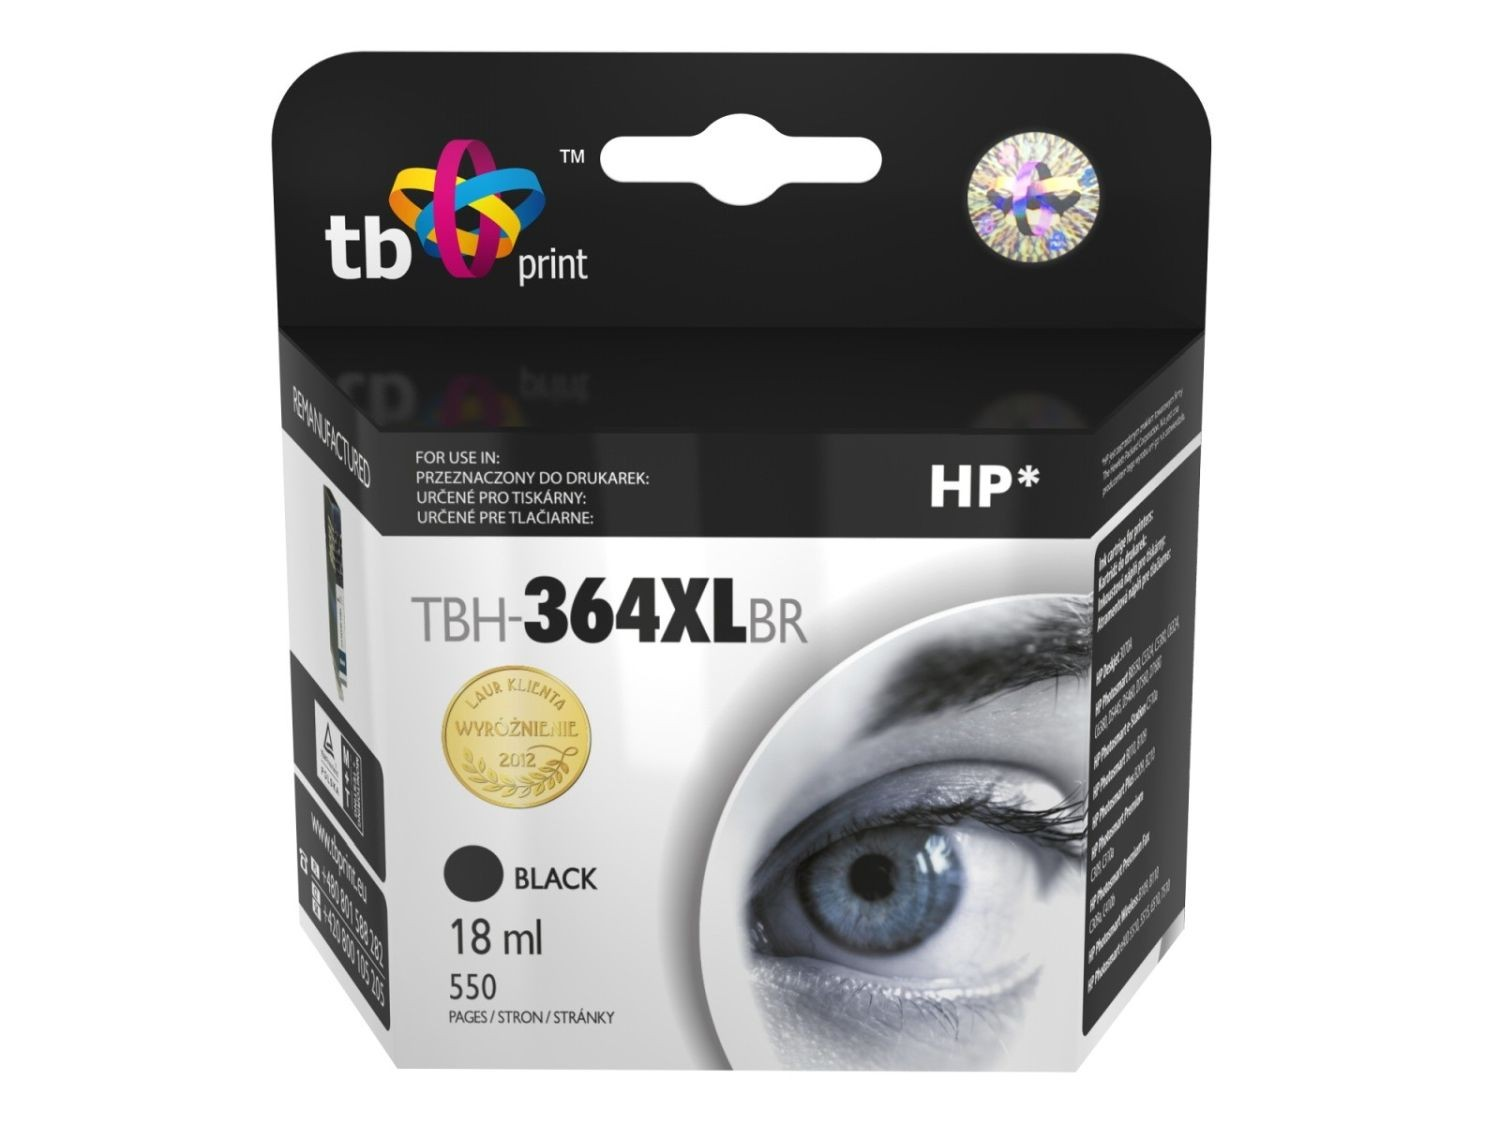 TB Print Tusz do HP PS B8550 TBH-364XLBR BK ref.